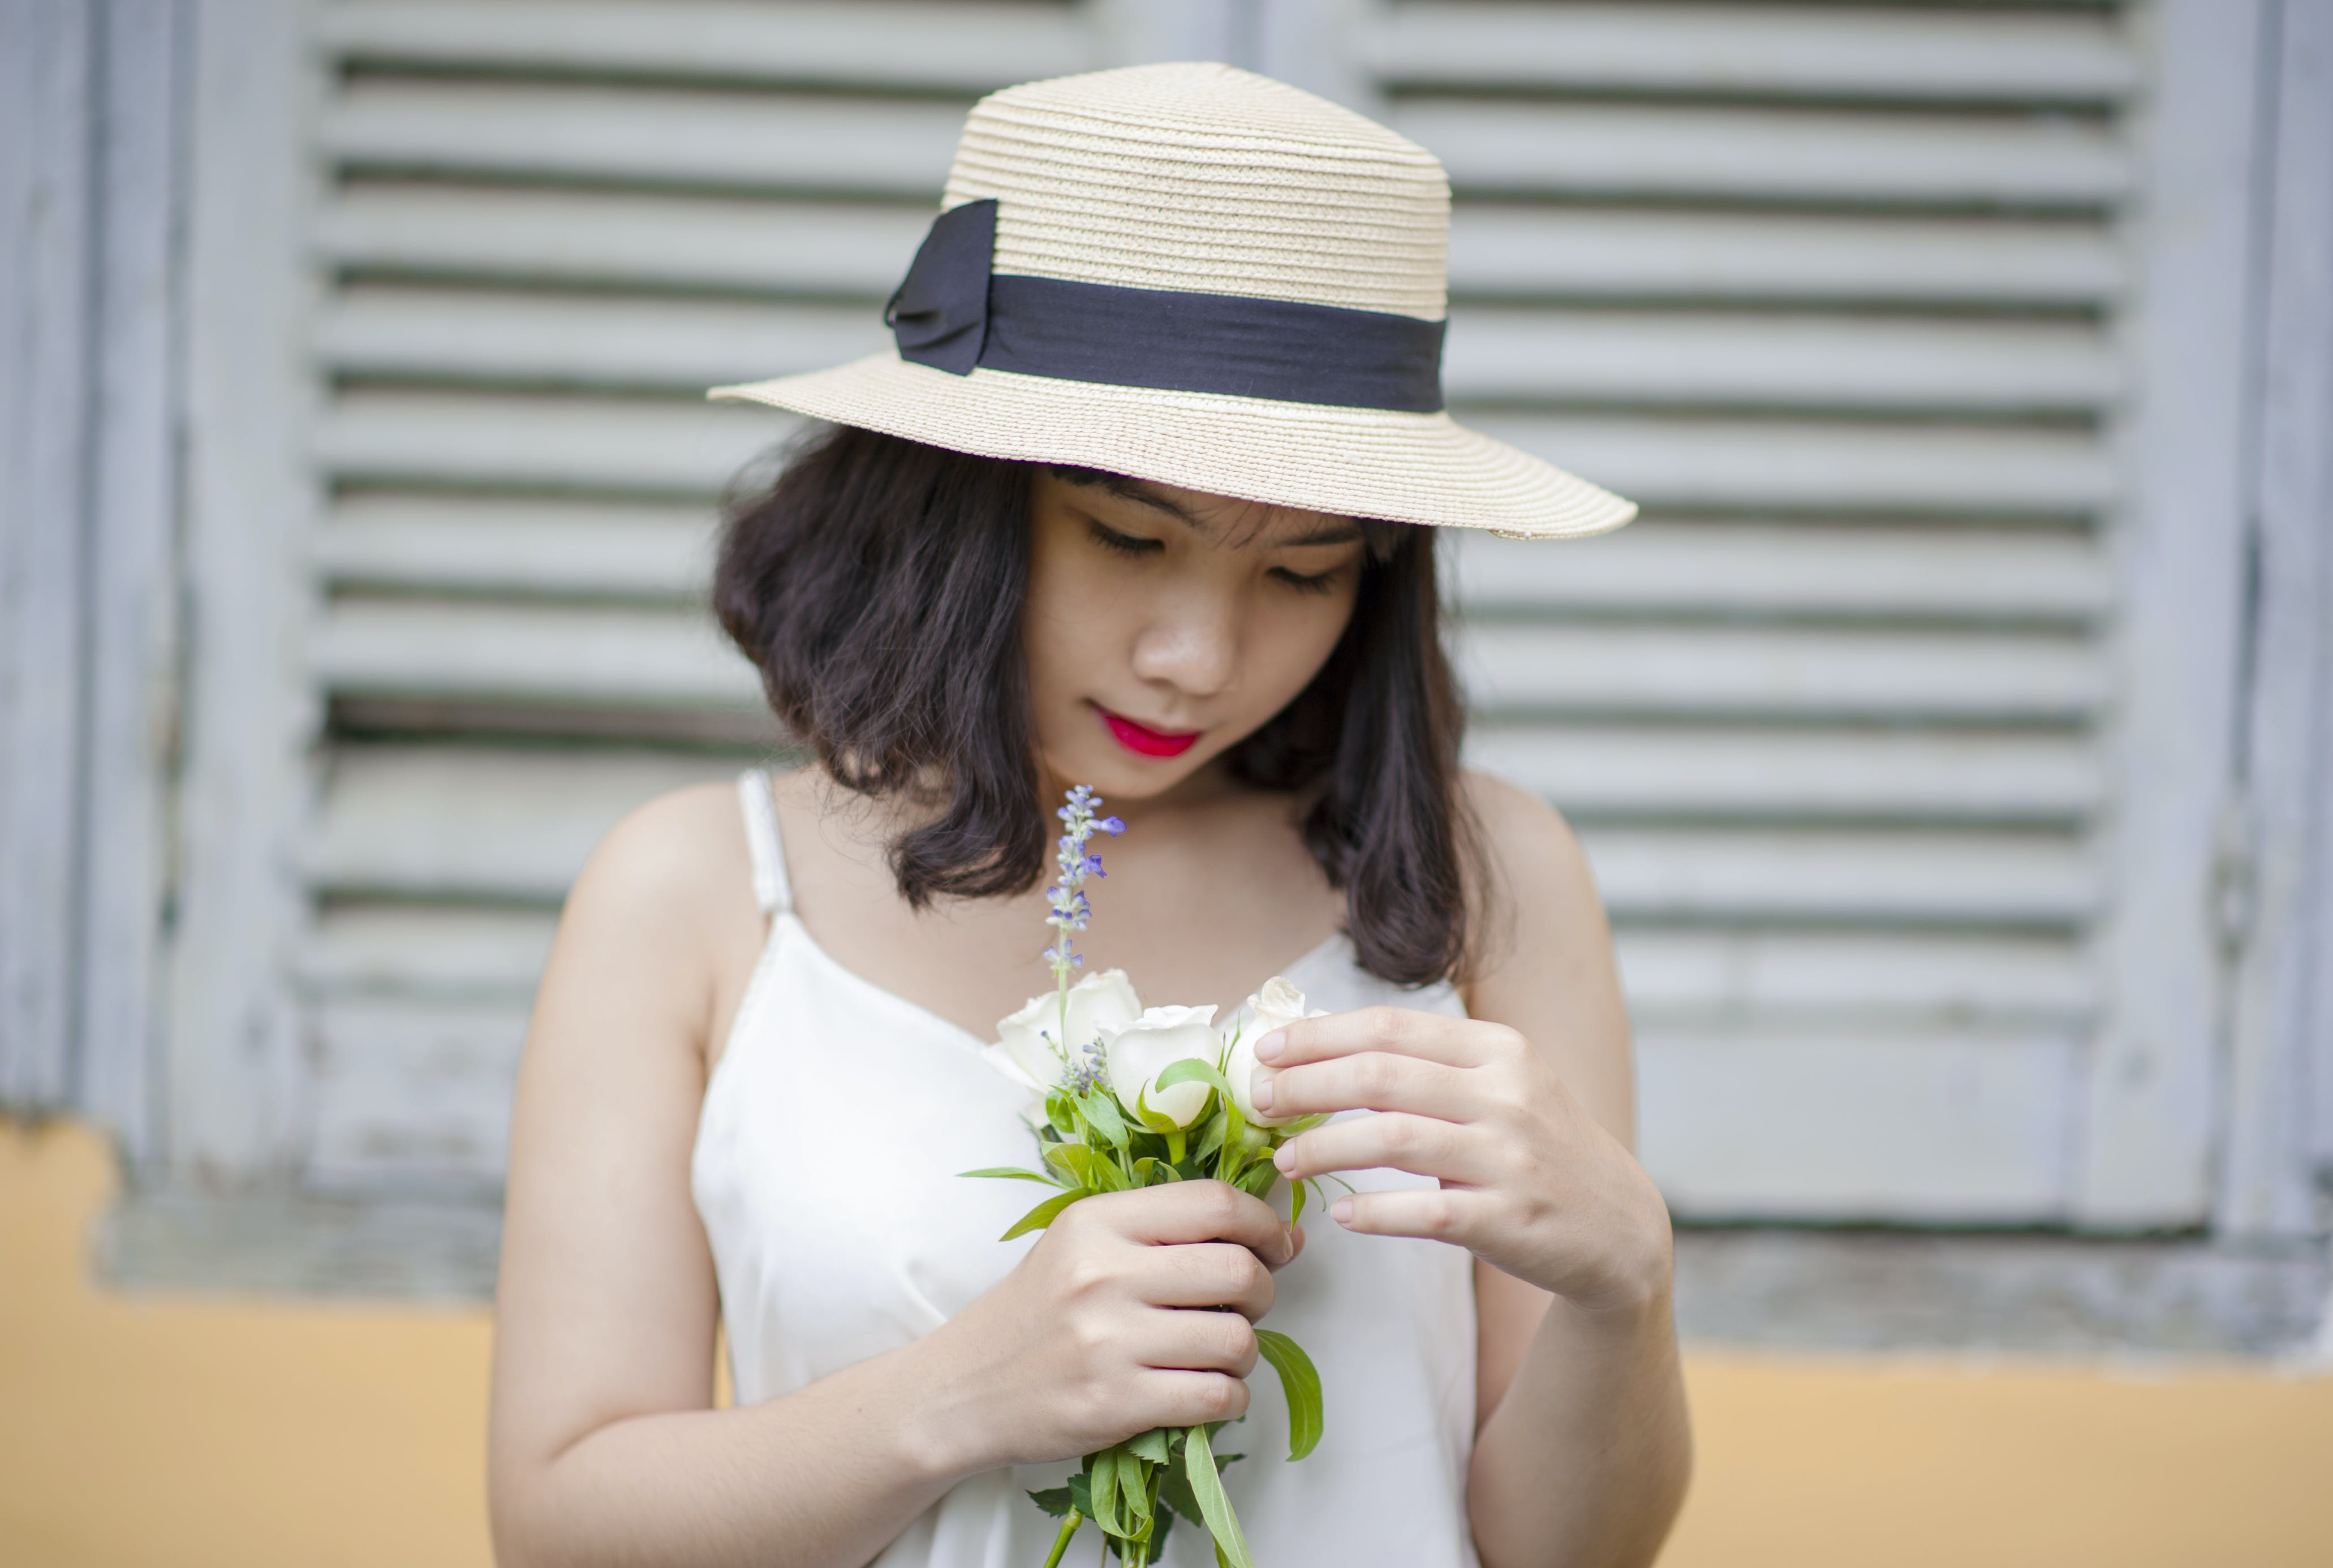 Woman Wearing Beige Sun Hat and White Sleeveless Top Holding White Flowers